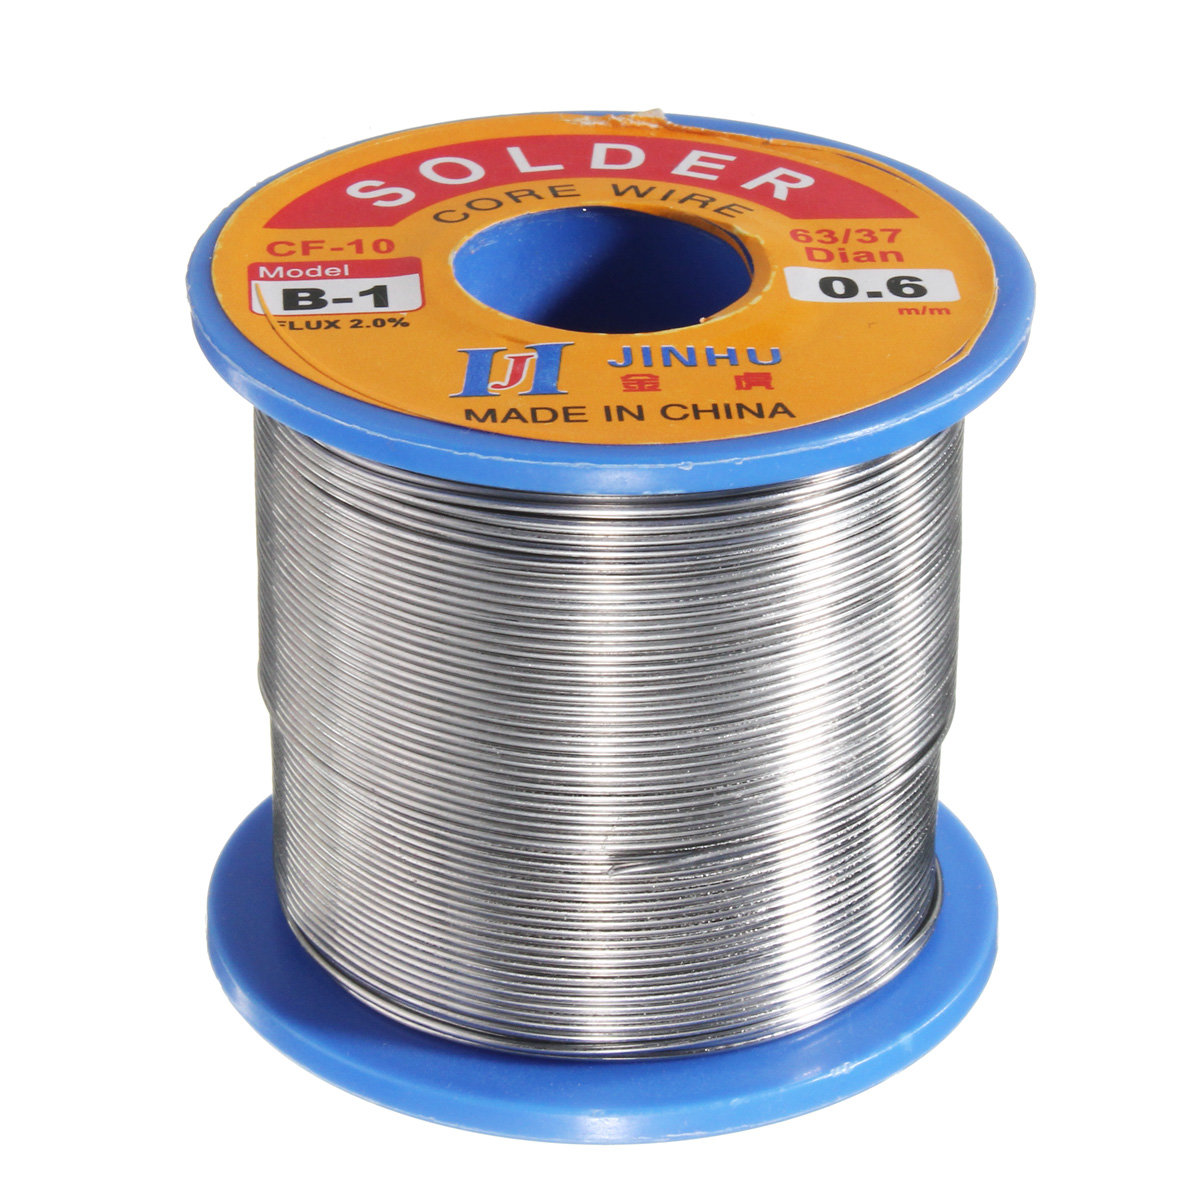 Wire Welding Tin Schematics Wiring Diagrams Pacar W900 Fuse Diagram 2001 300g 0 6mm Reel Roll Solder 63 37 Lead Rh Banggood Com Instead Of Soldering Lincoln 140 Cart Amazon